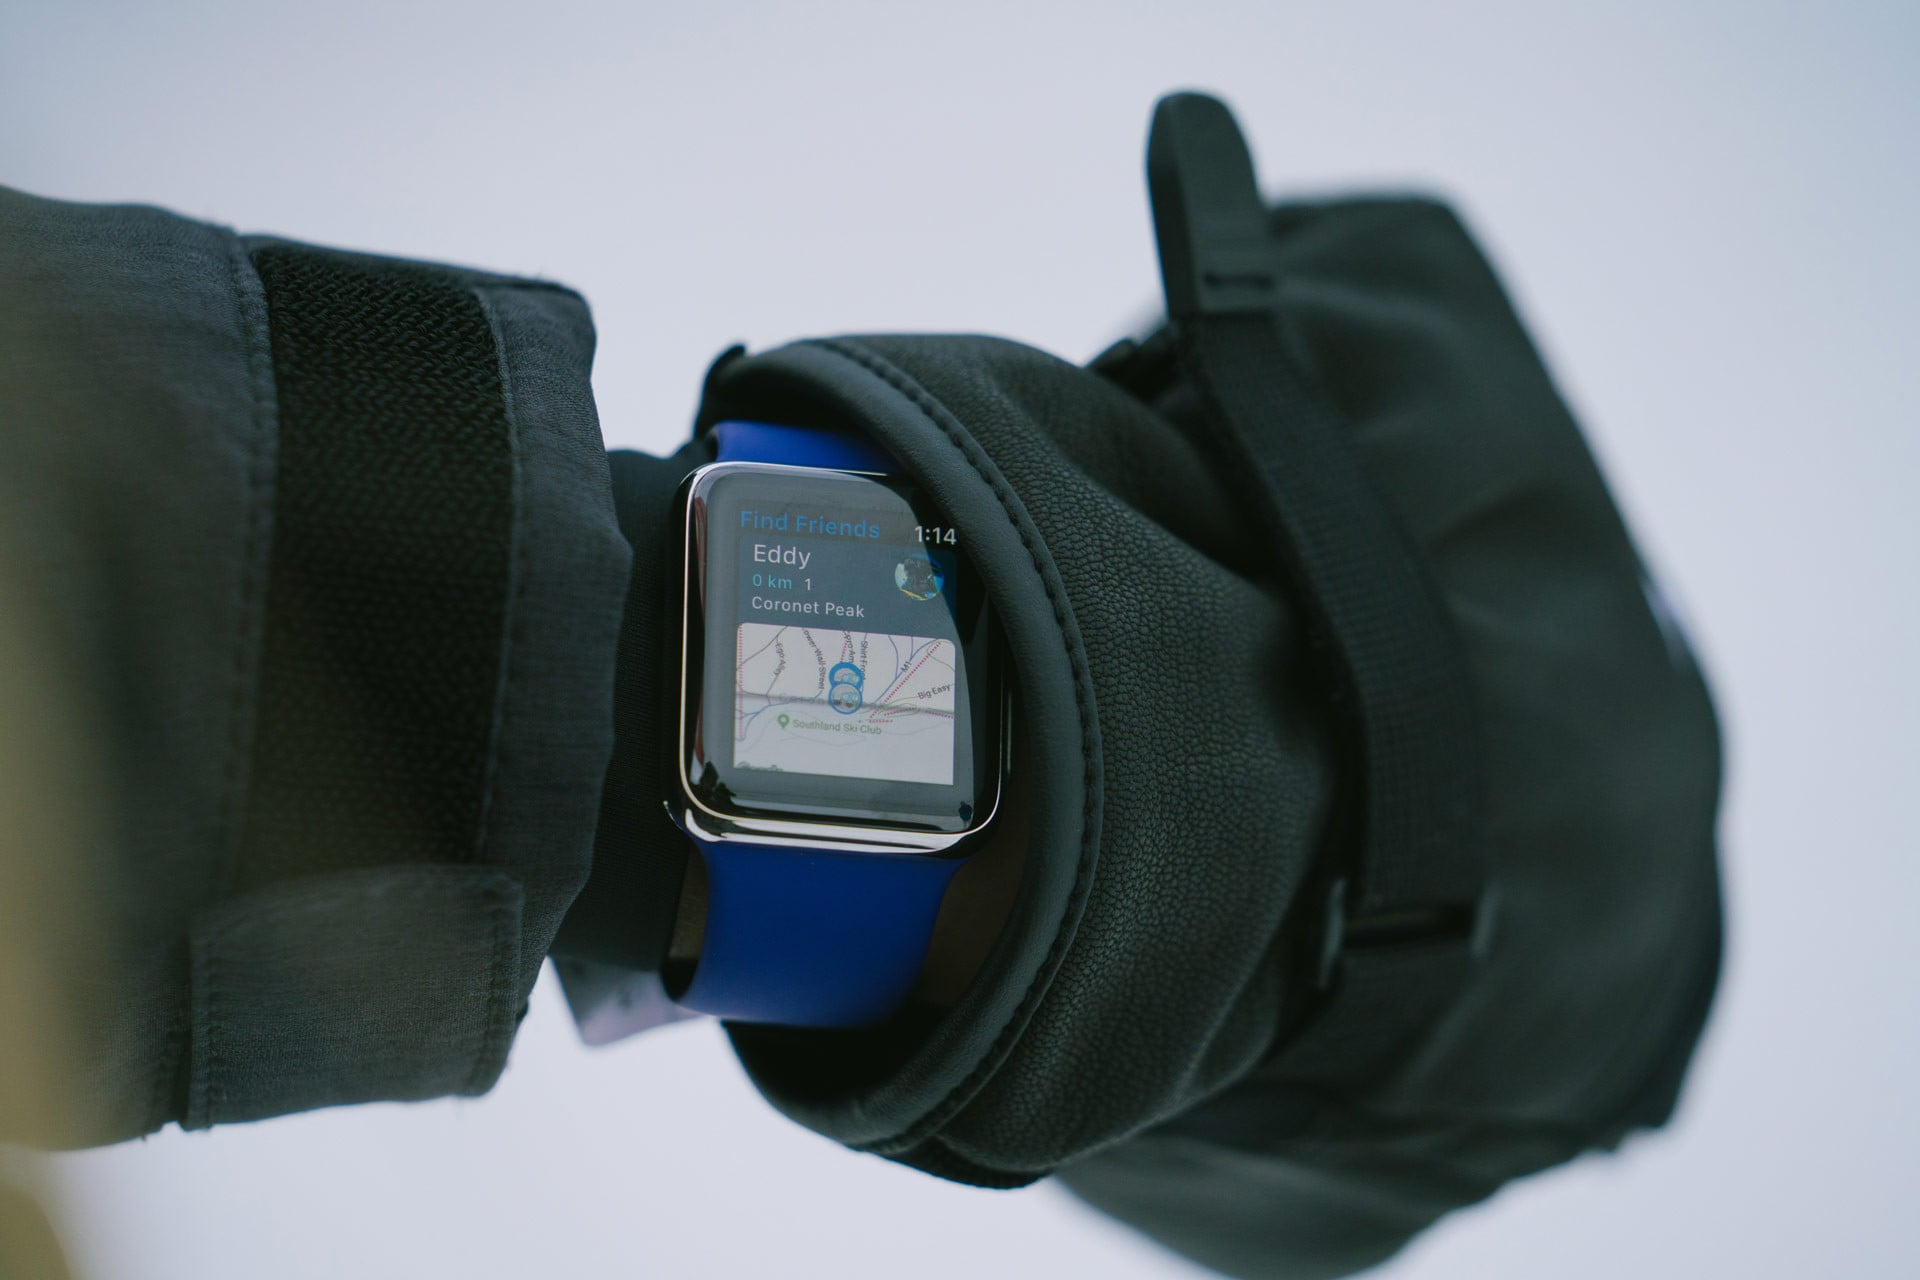 Road test: I took my Apple Watch on a ski trip and it made me fitter